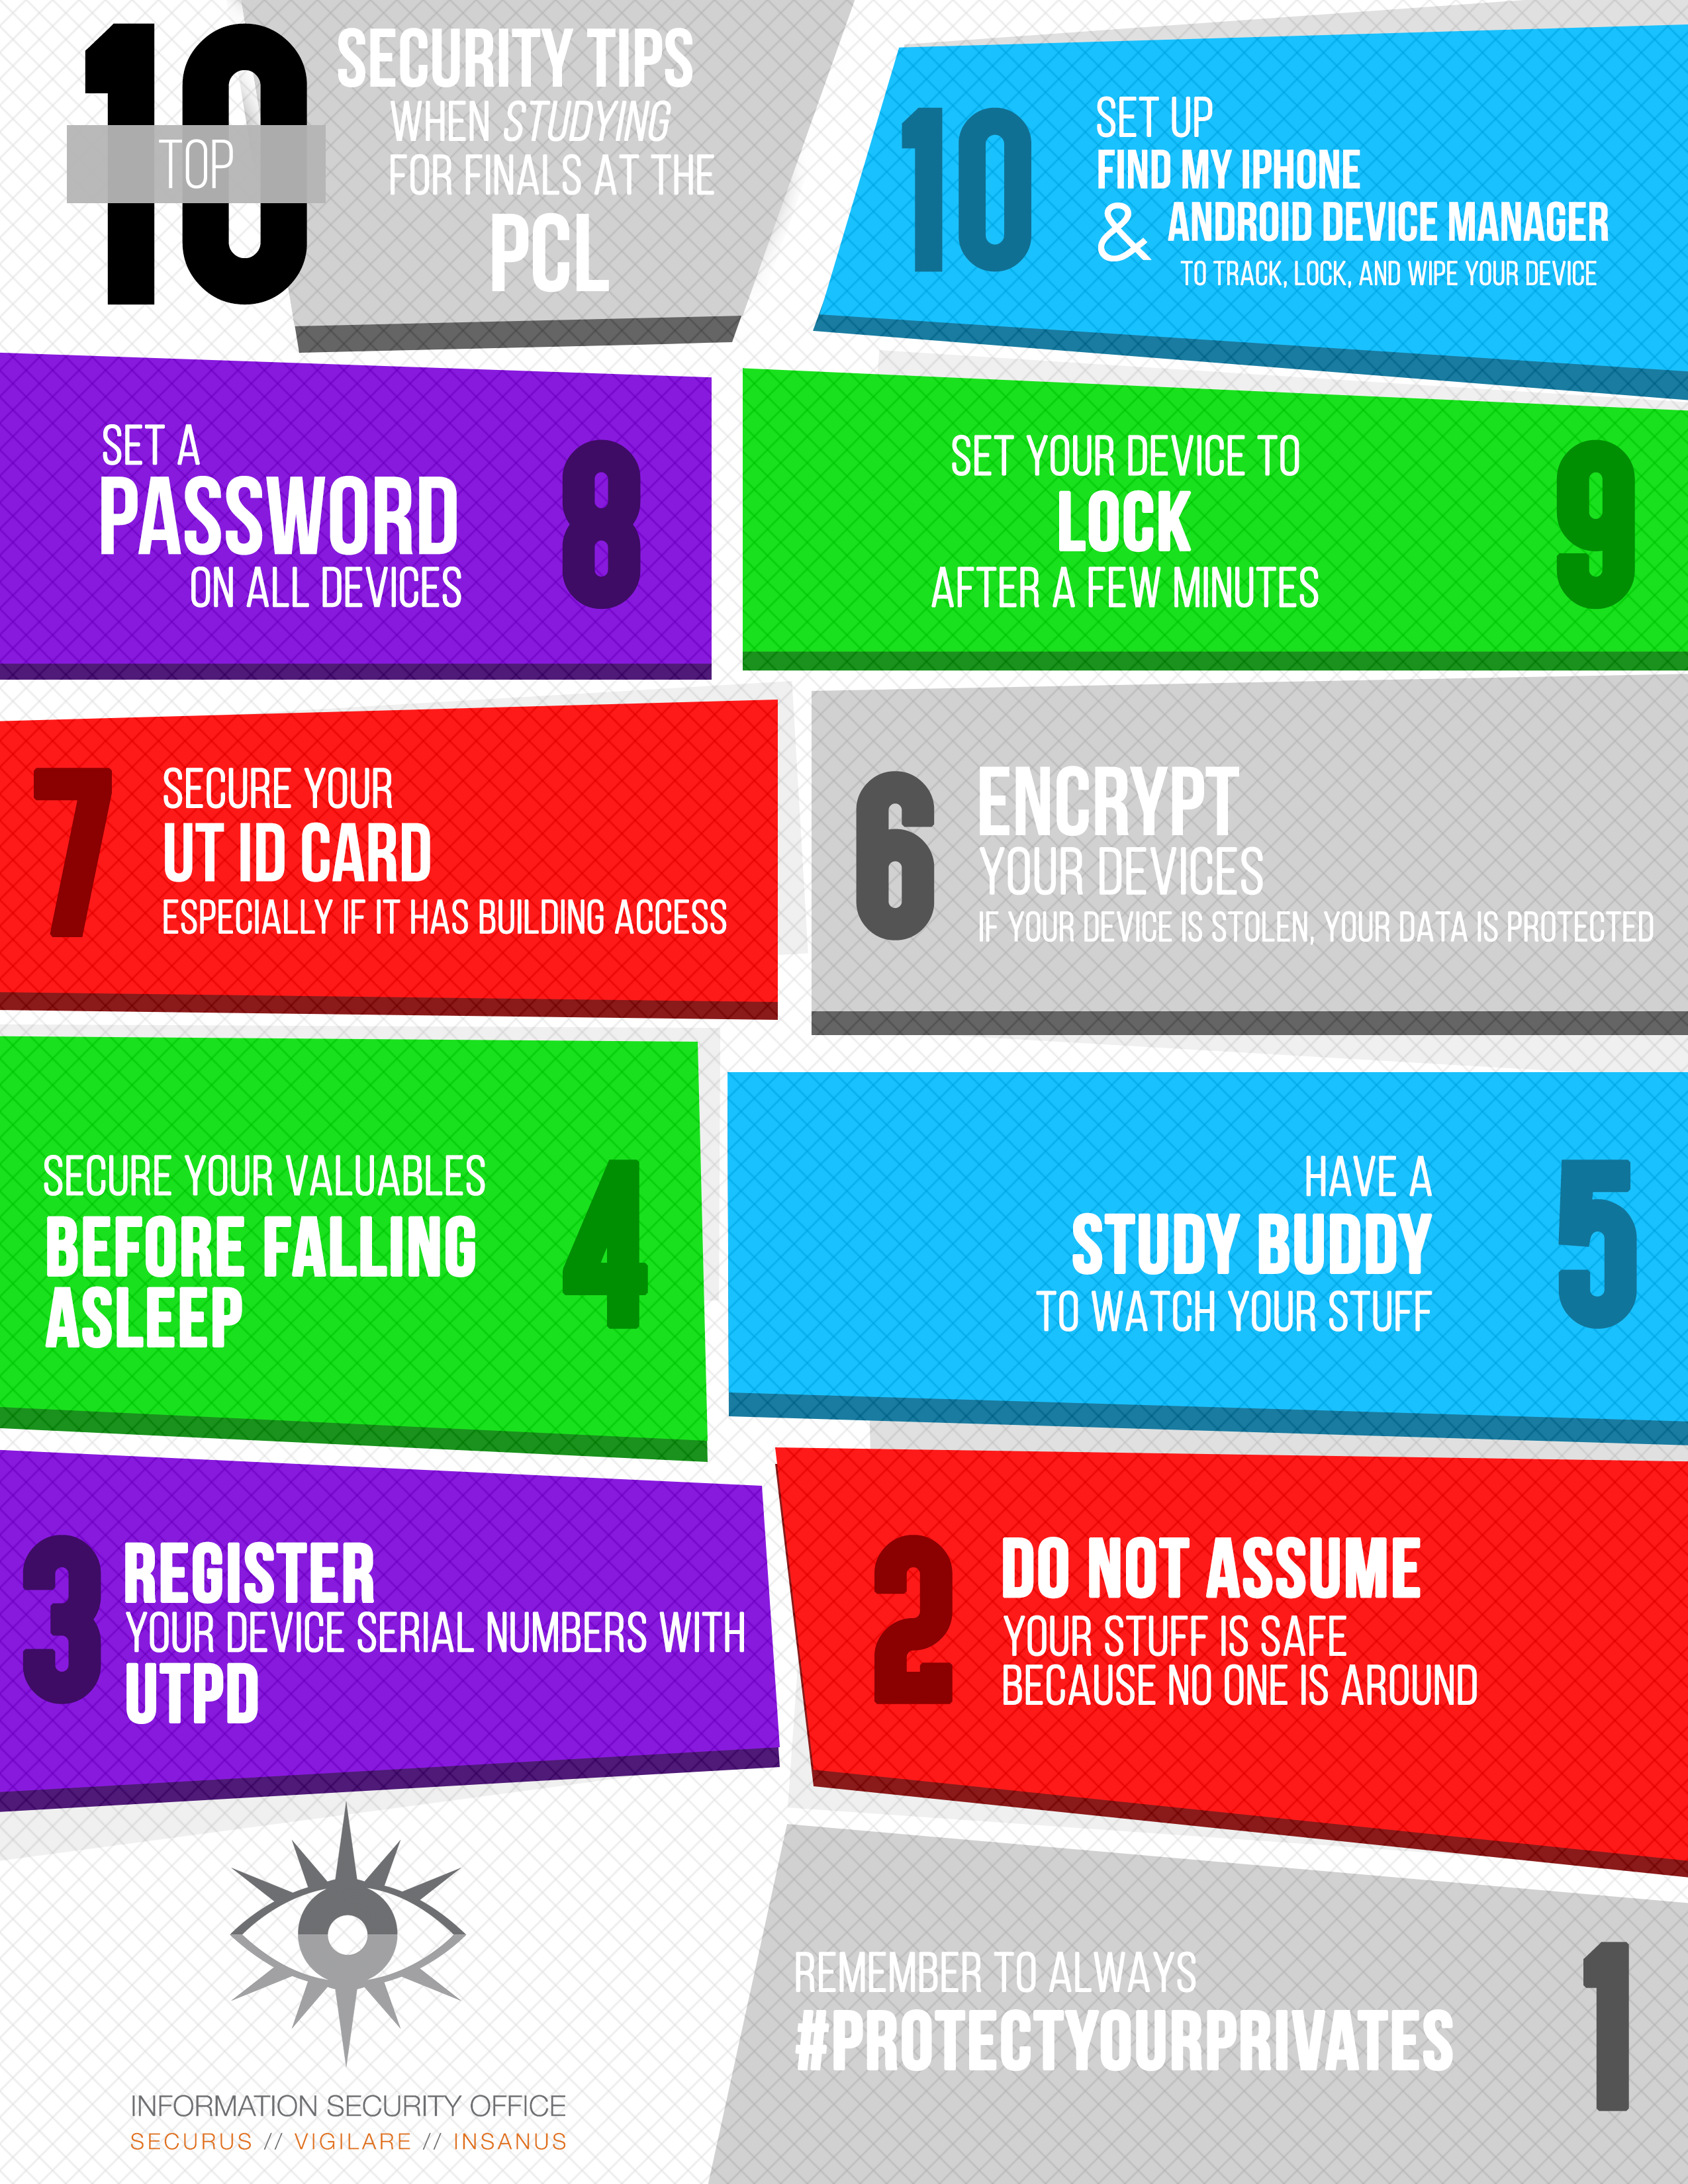 The top ten security tips when studying for finals at the PCL.